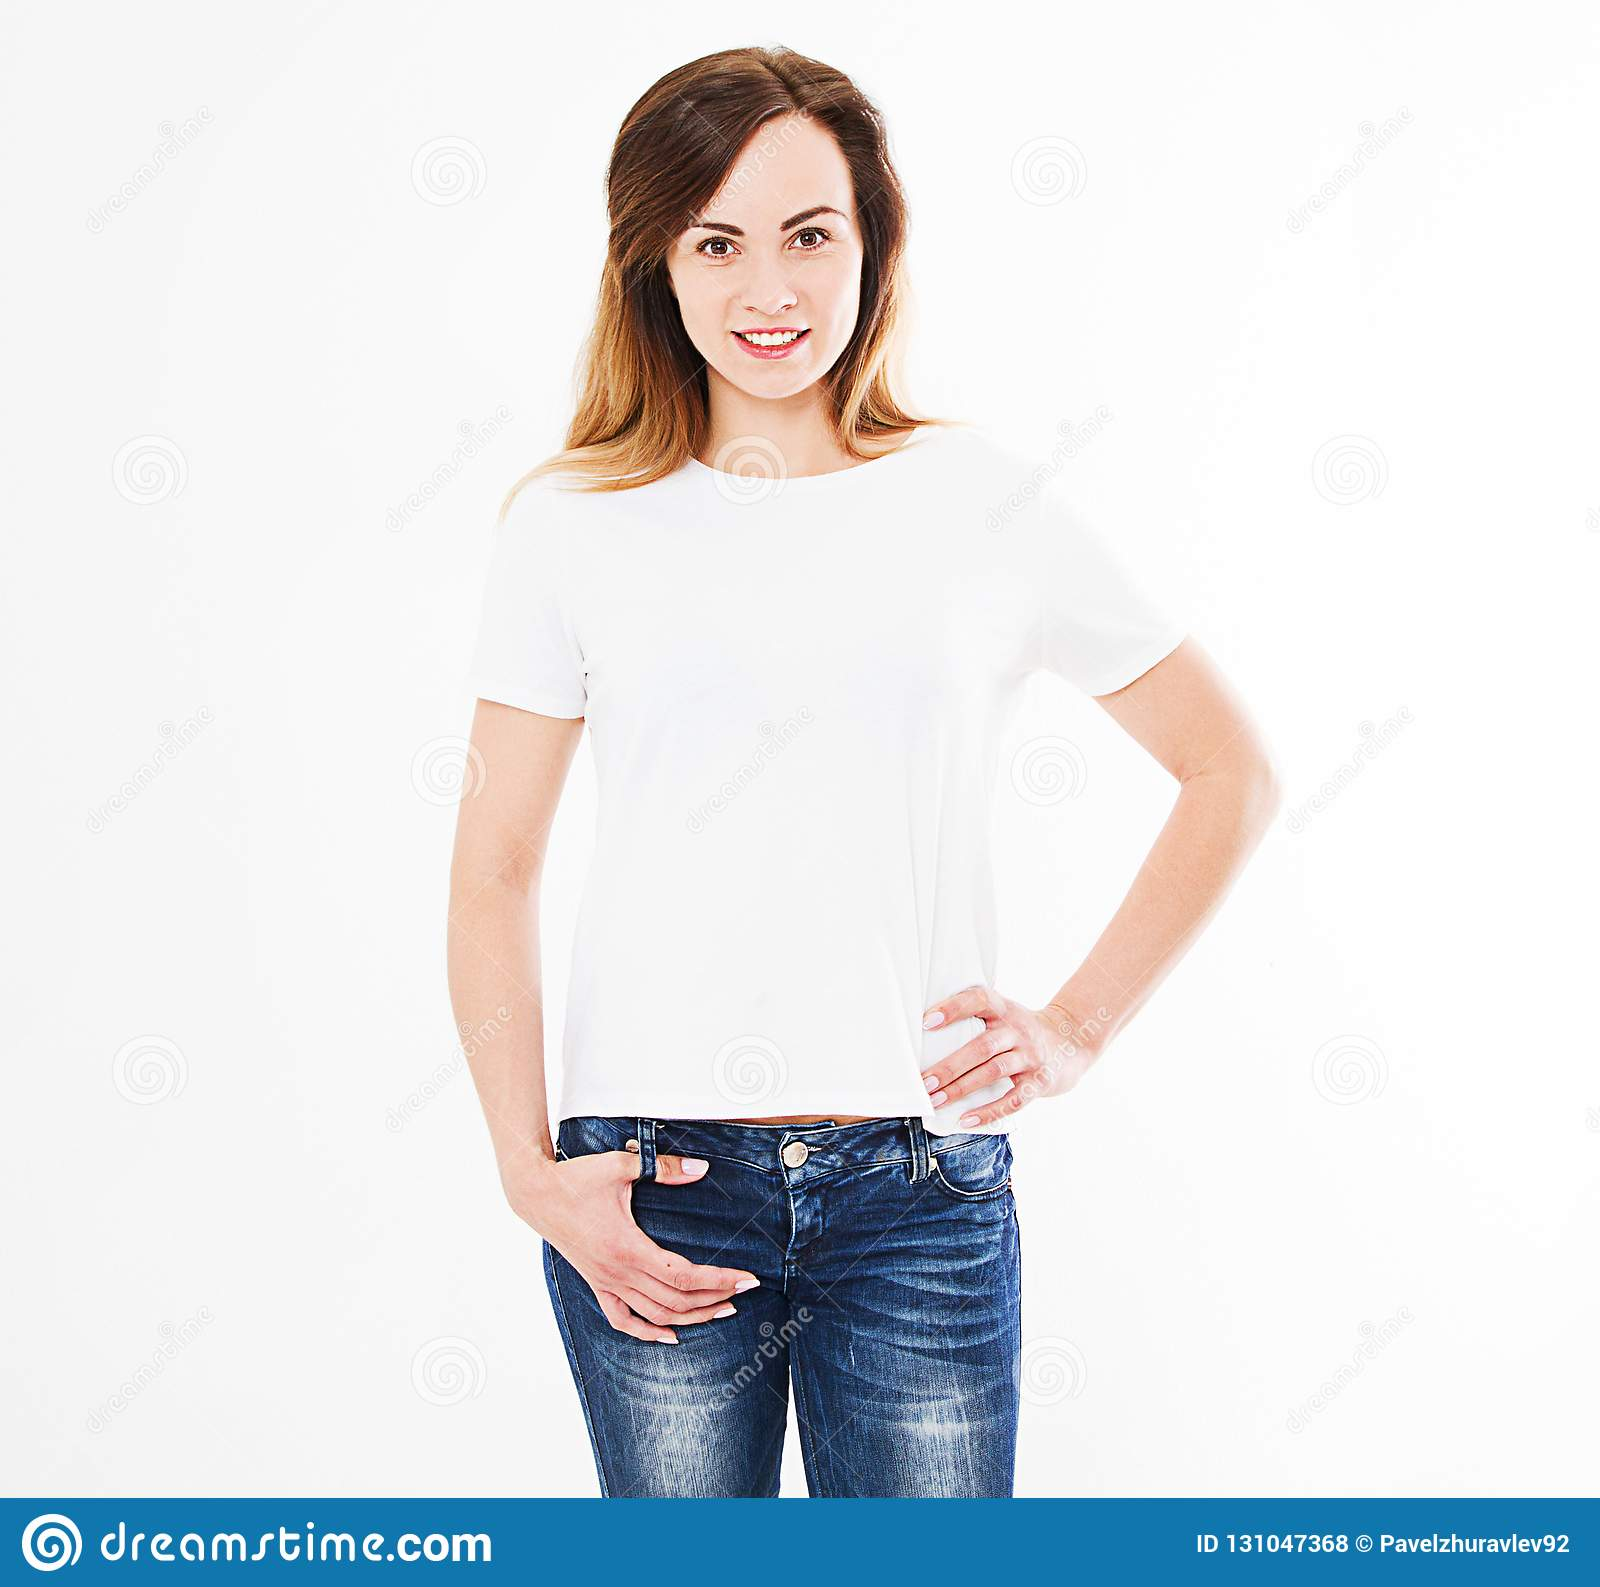 Smile caucasian woman in tshirt isolated on white background, mock up for design